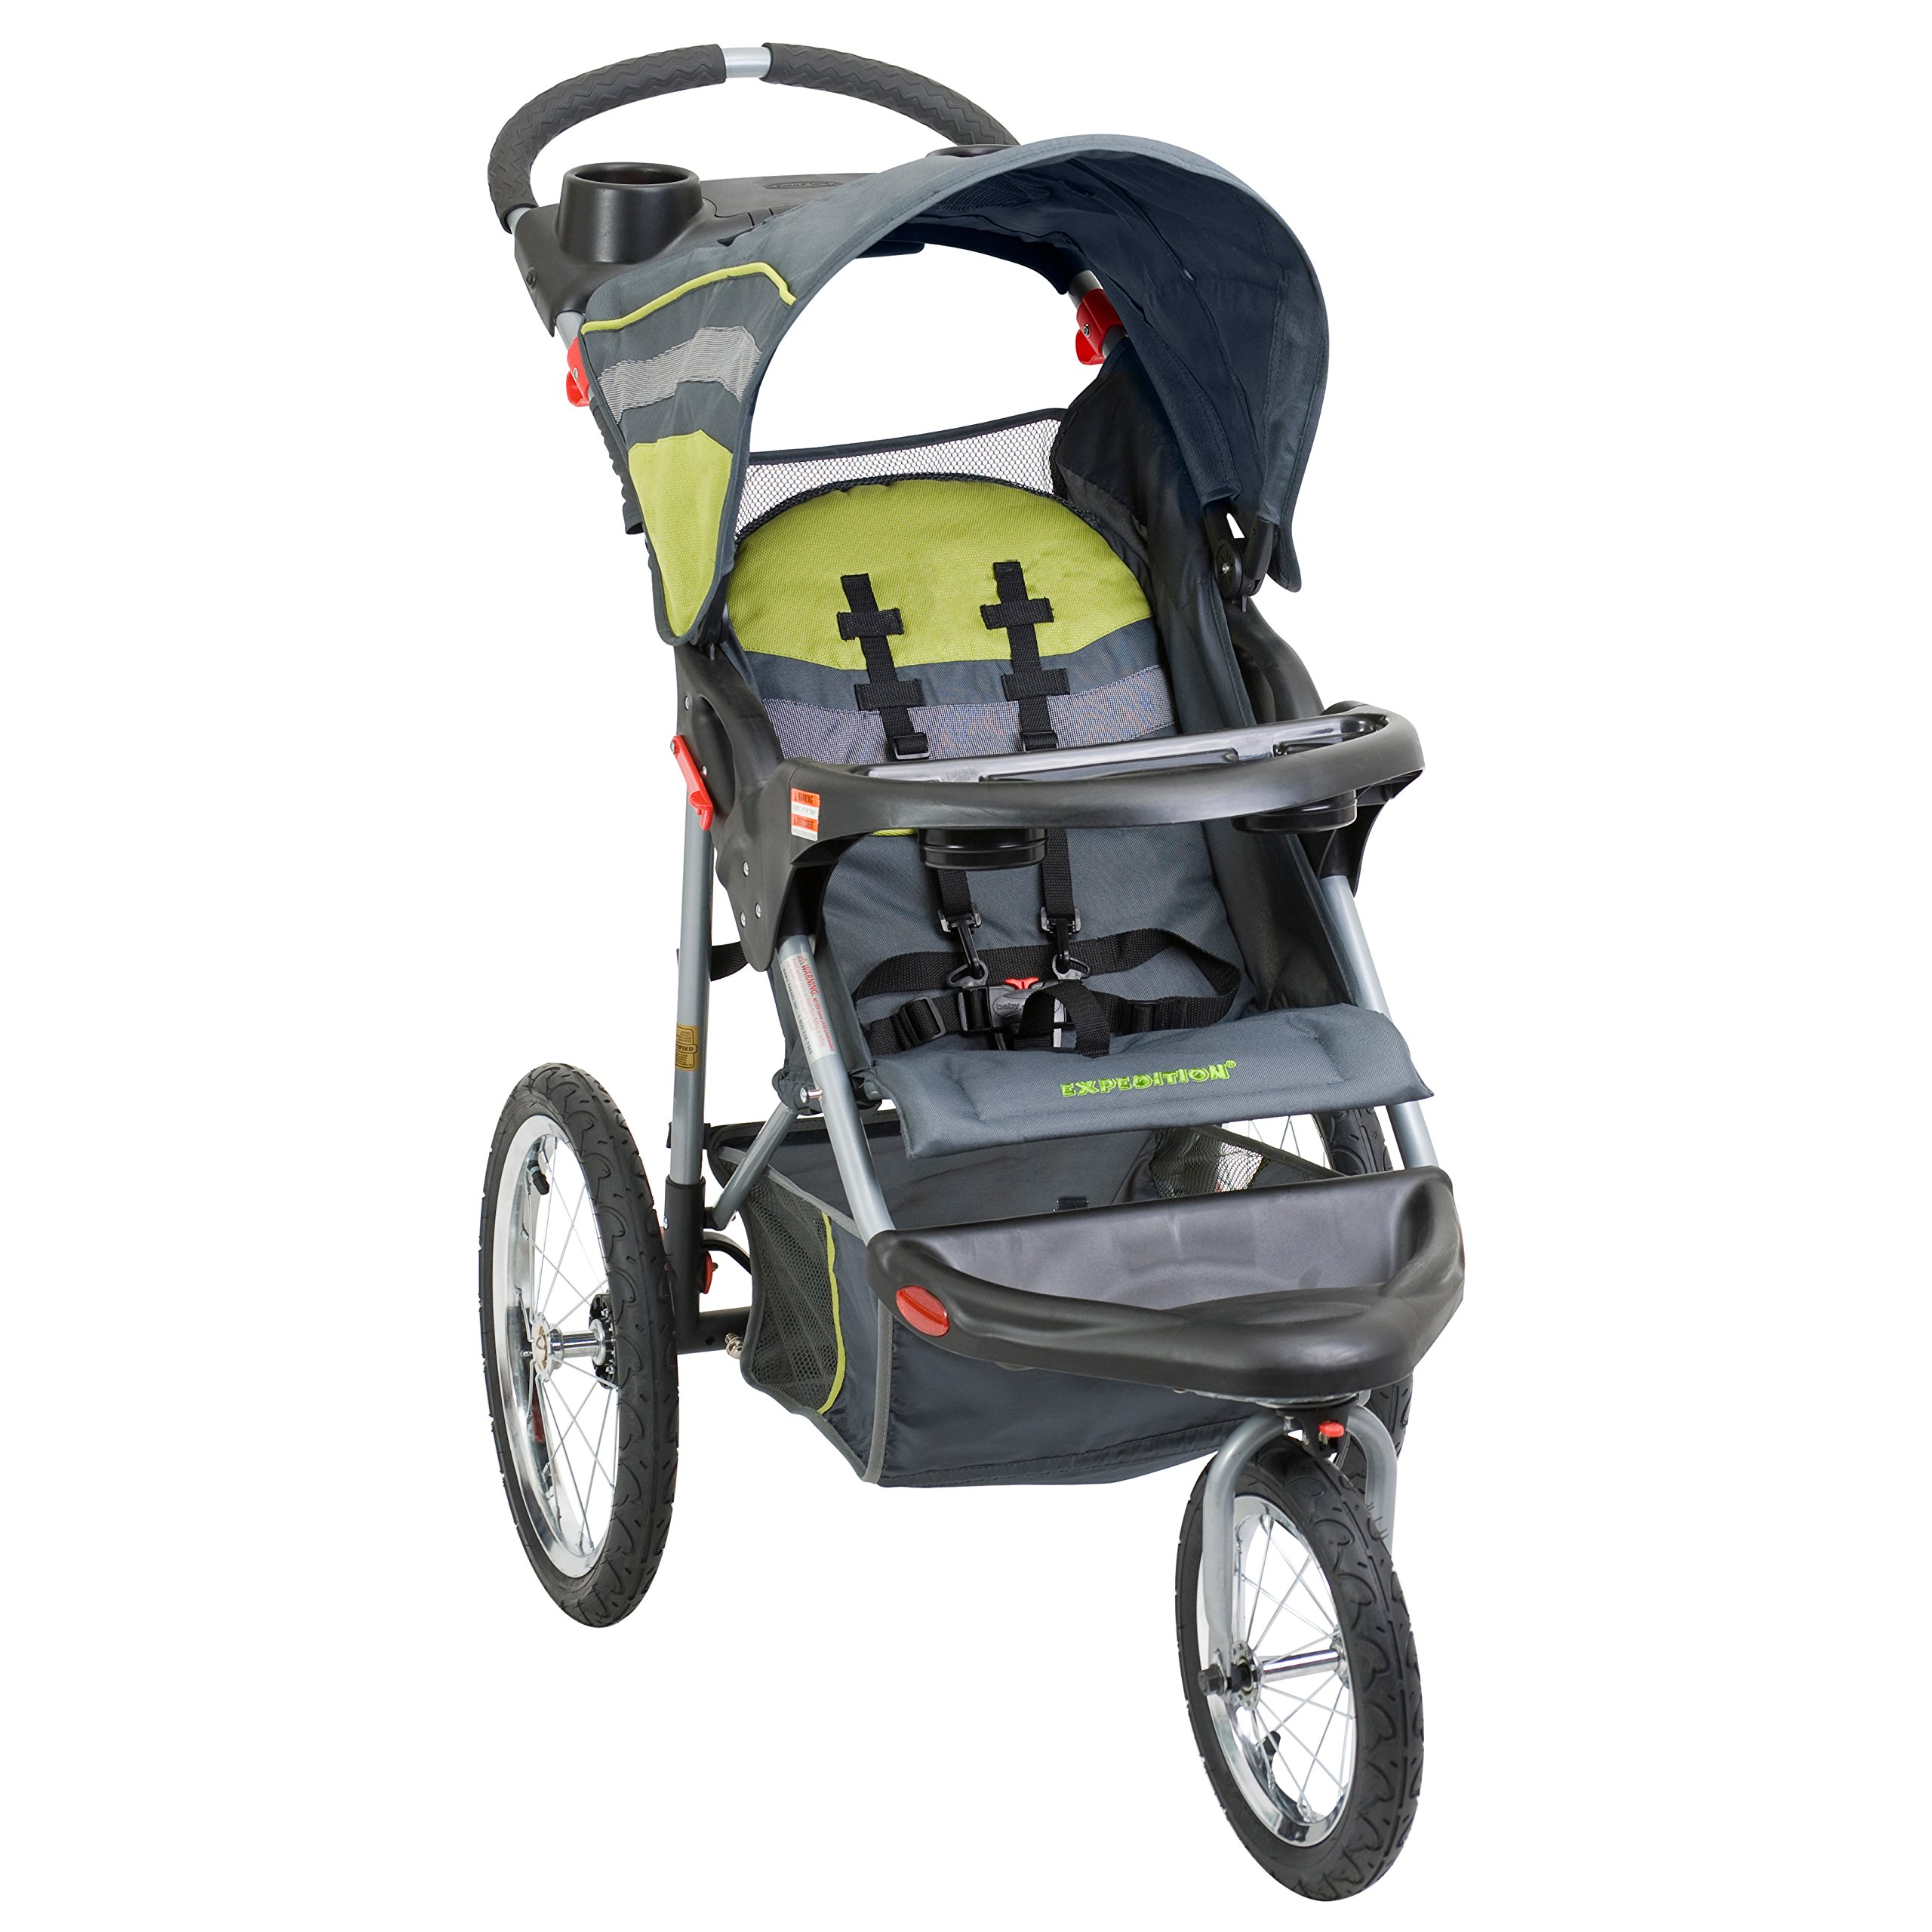 Baby Trend Expedition Jogger Stroller, Carbon by Baby Trend (Image #1)